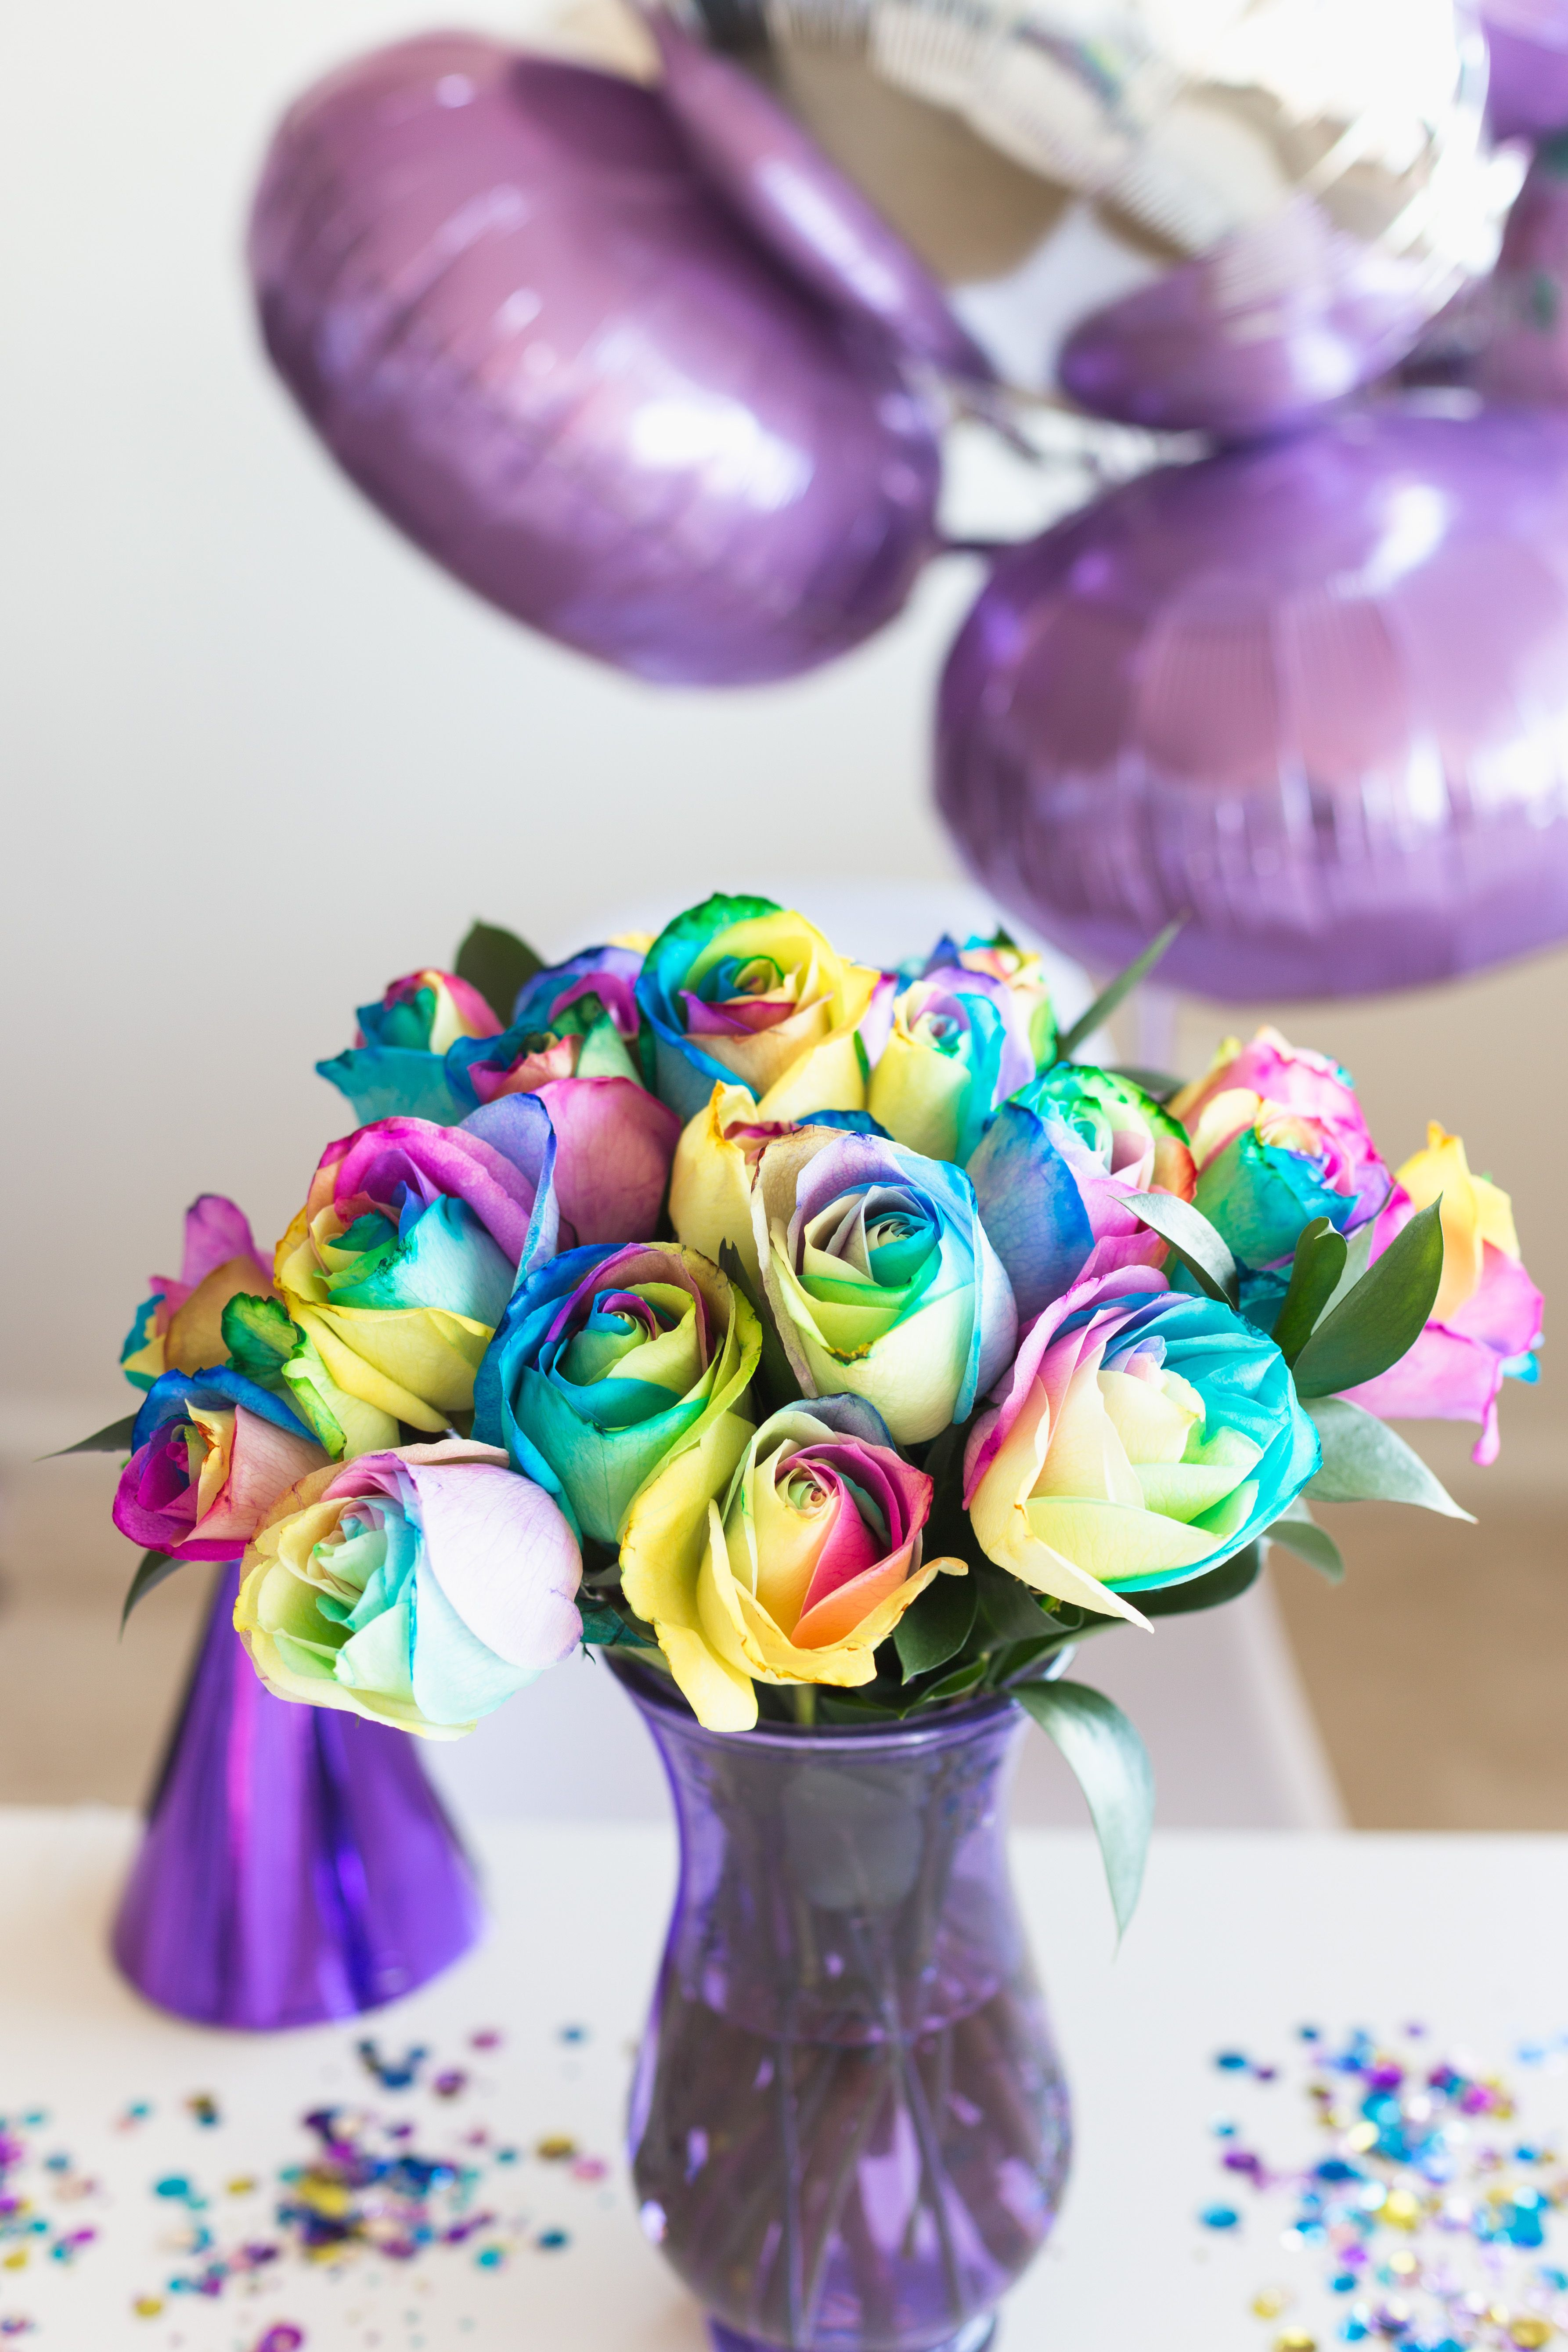 List Of Birthday Quotes And Message Ideas For Your Card When Happy Or Best Wishes Just Isnt Going To Cut It